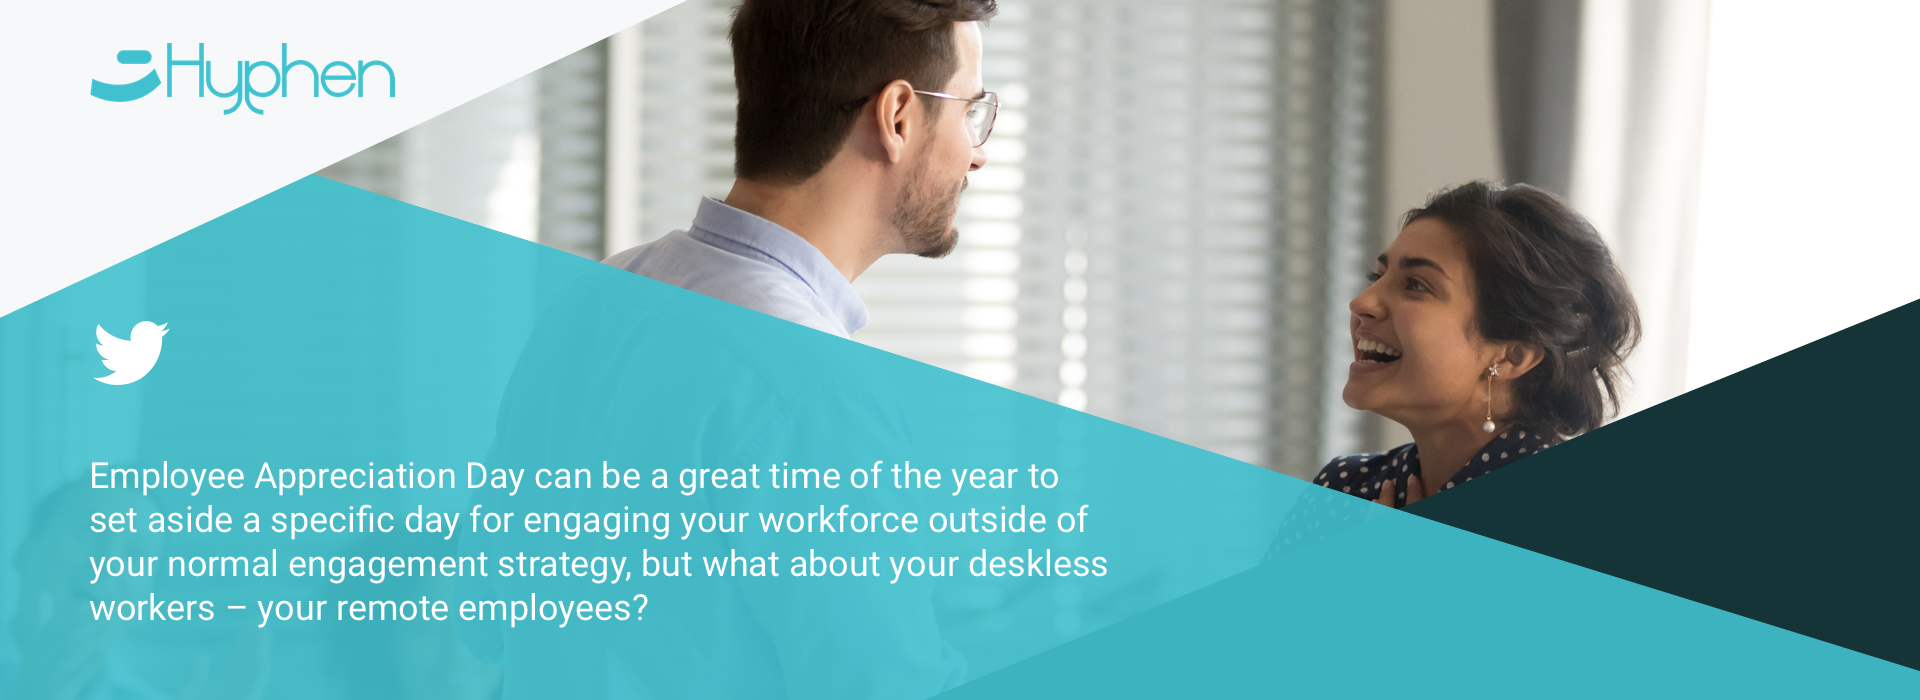 Employee Appreciation Day can be a great time of the year to set aside a specific day for engaging your workforce outside of your normal engagement strategy, but what about your deskless workers – your remote employees?